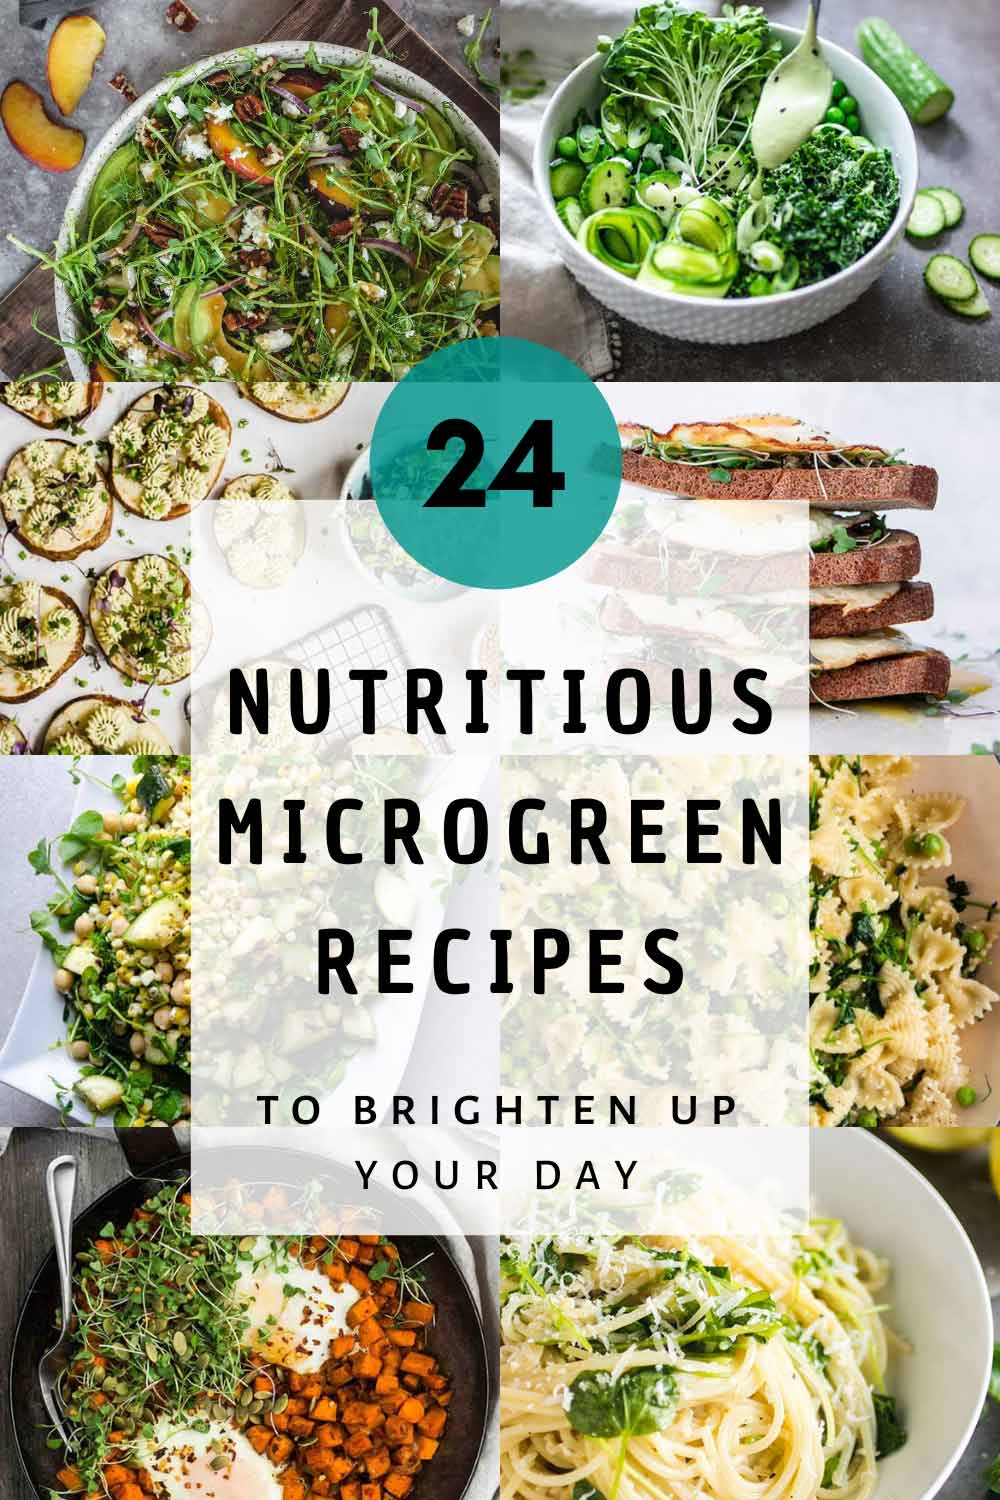 Microgreen recipes featured image